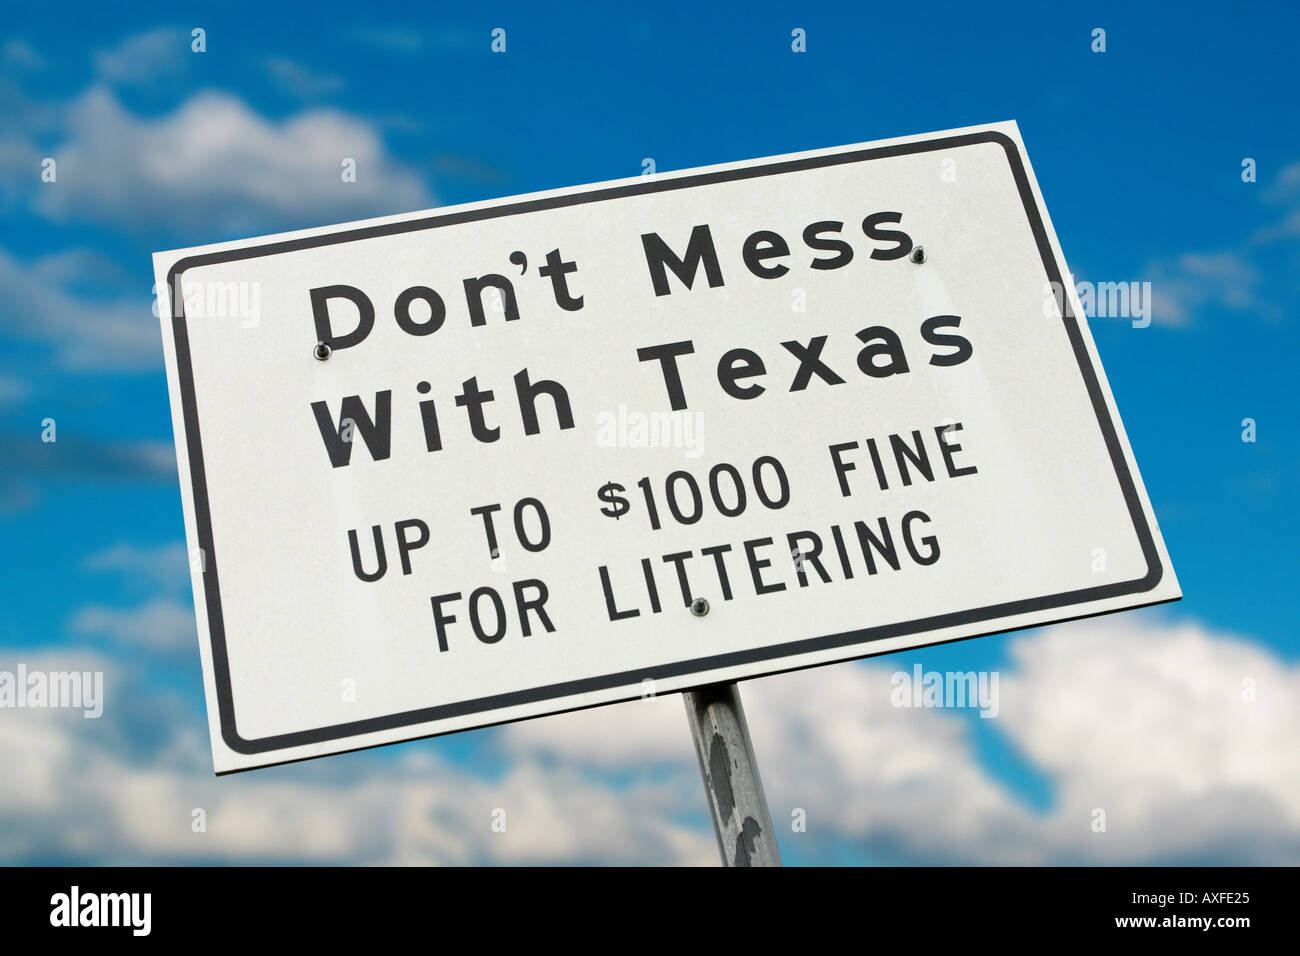 Don t Mess With Texas sign - Stock Image